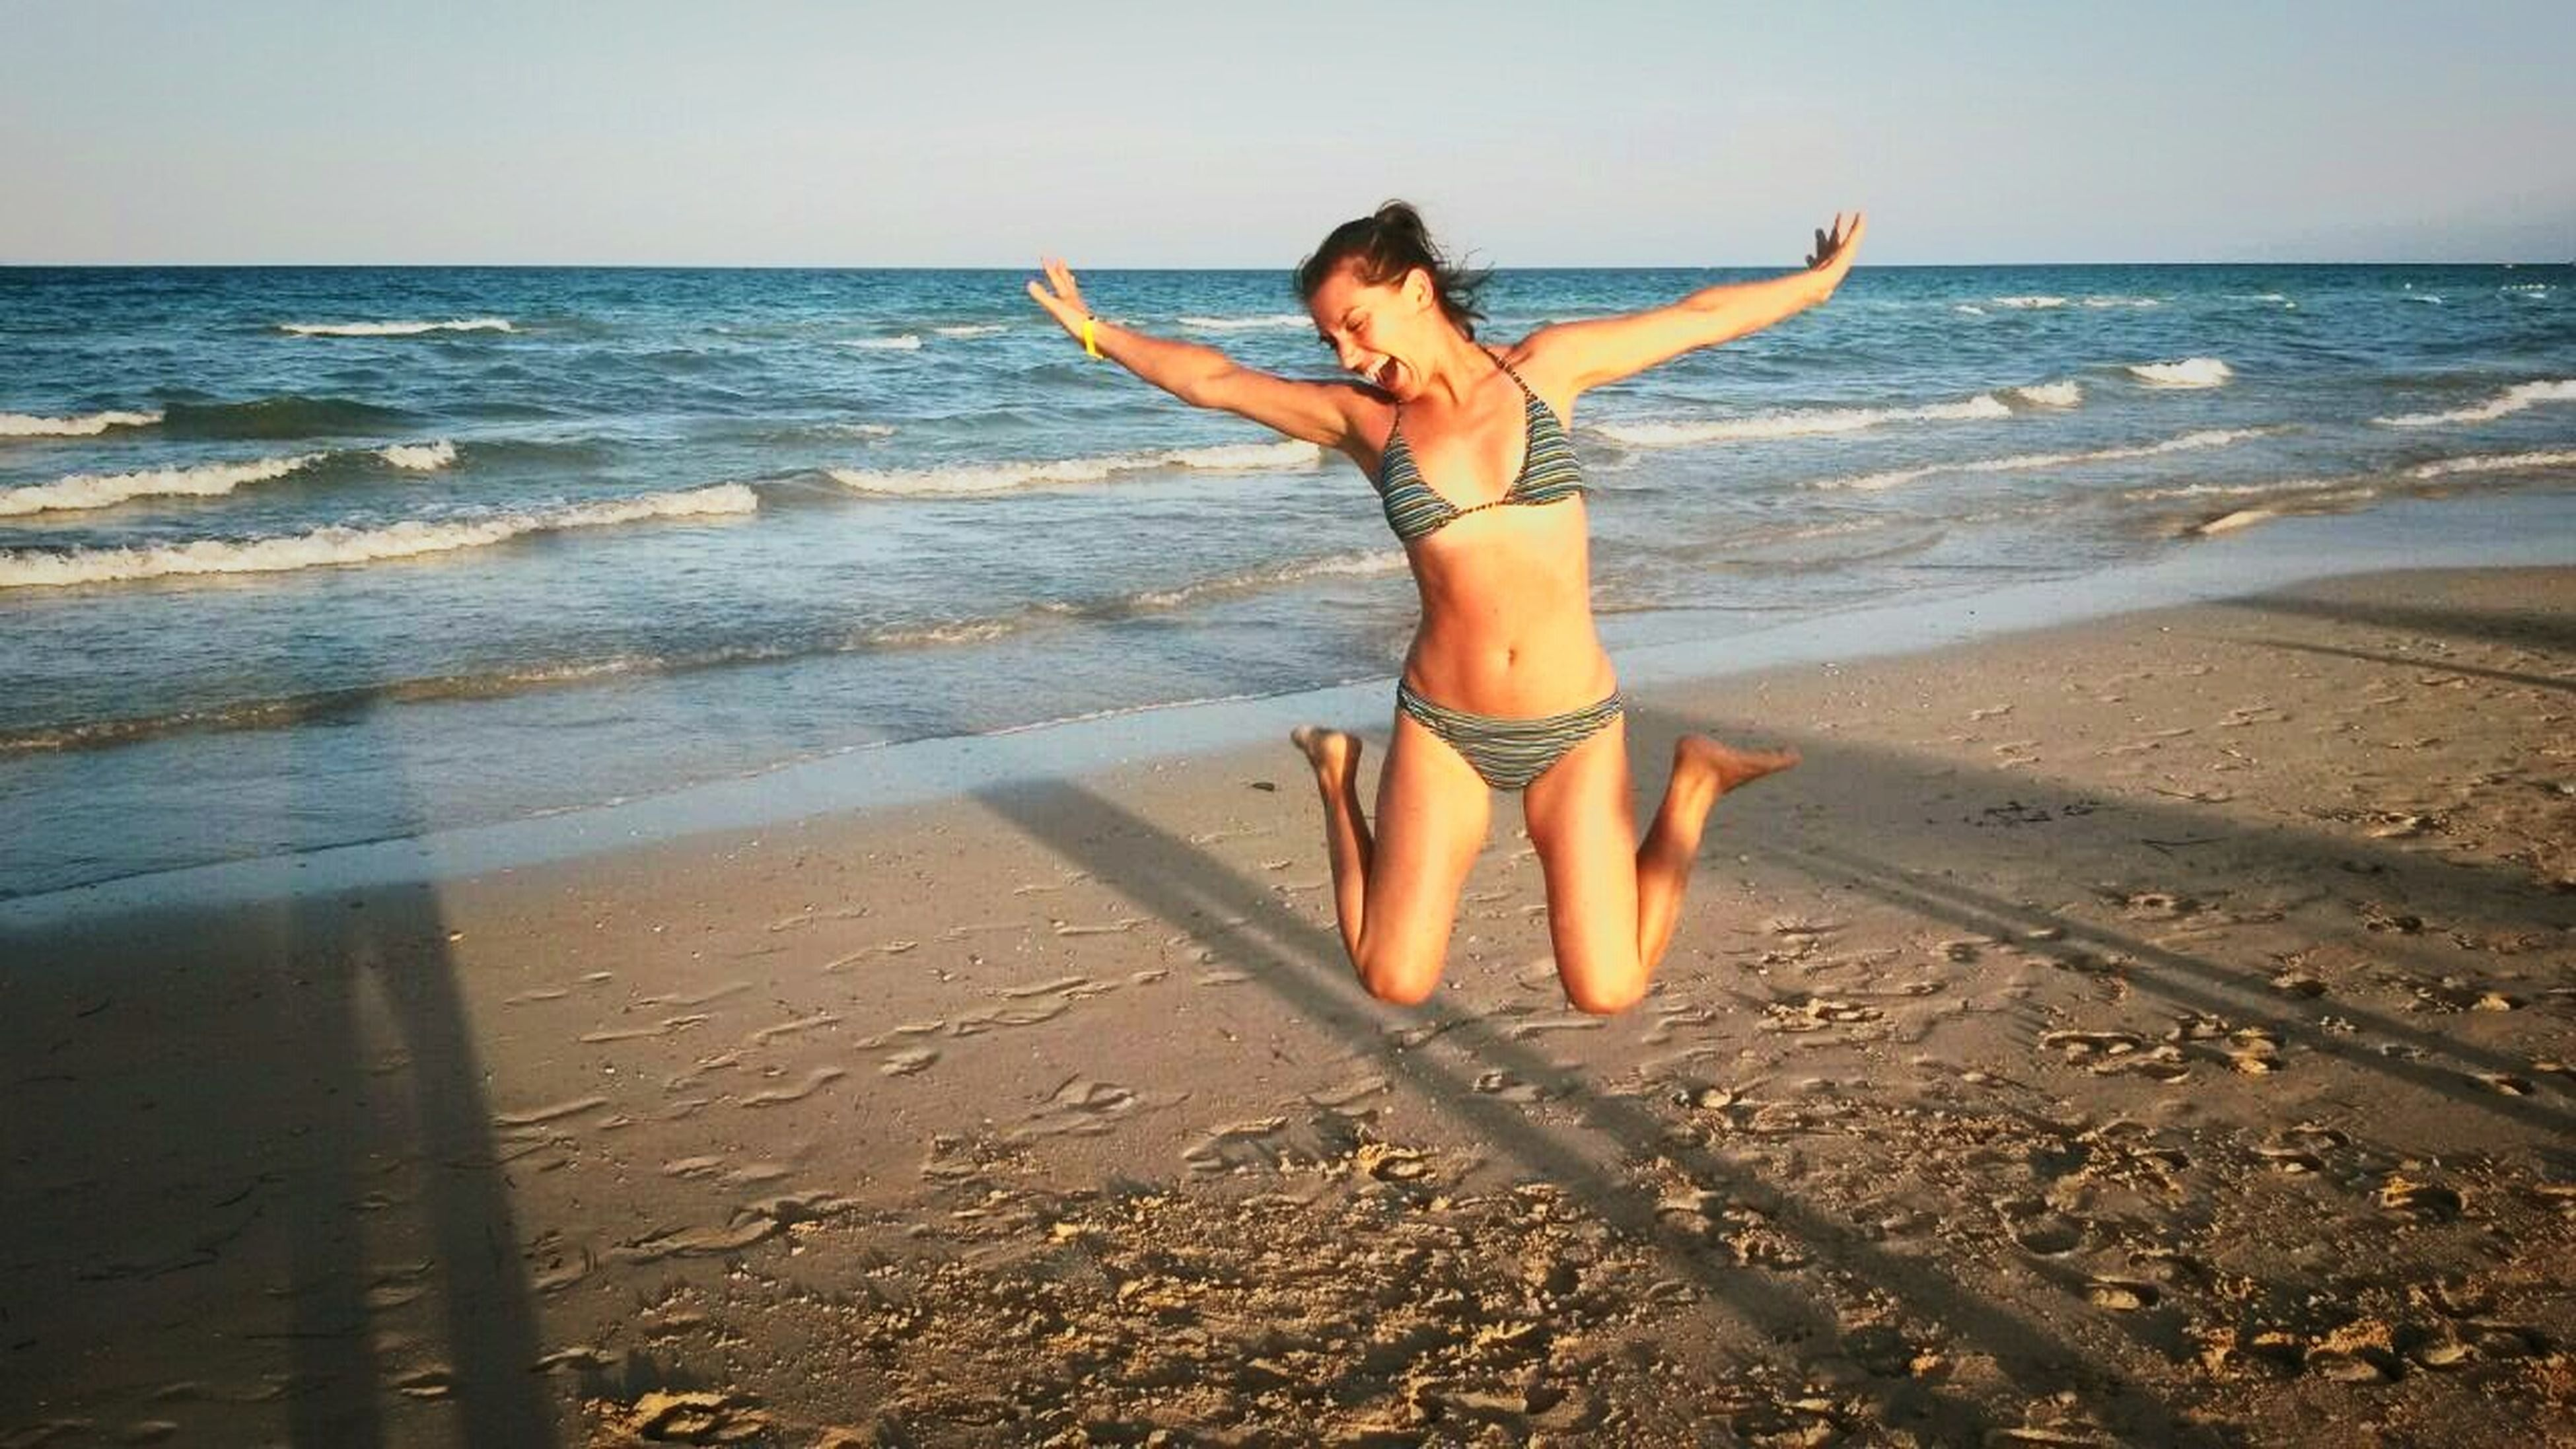 beach, sea, horizon over water, shore, sand, water, full length, leisure activity, vacations, lifestyles, young adult, person, summer, young women, sunlight, wave, sky, bikini